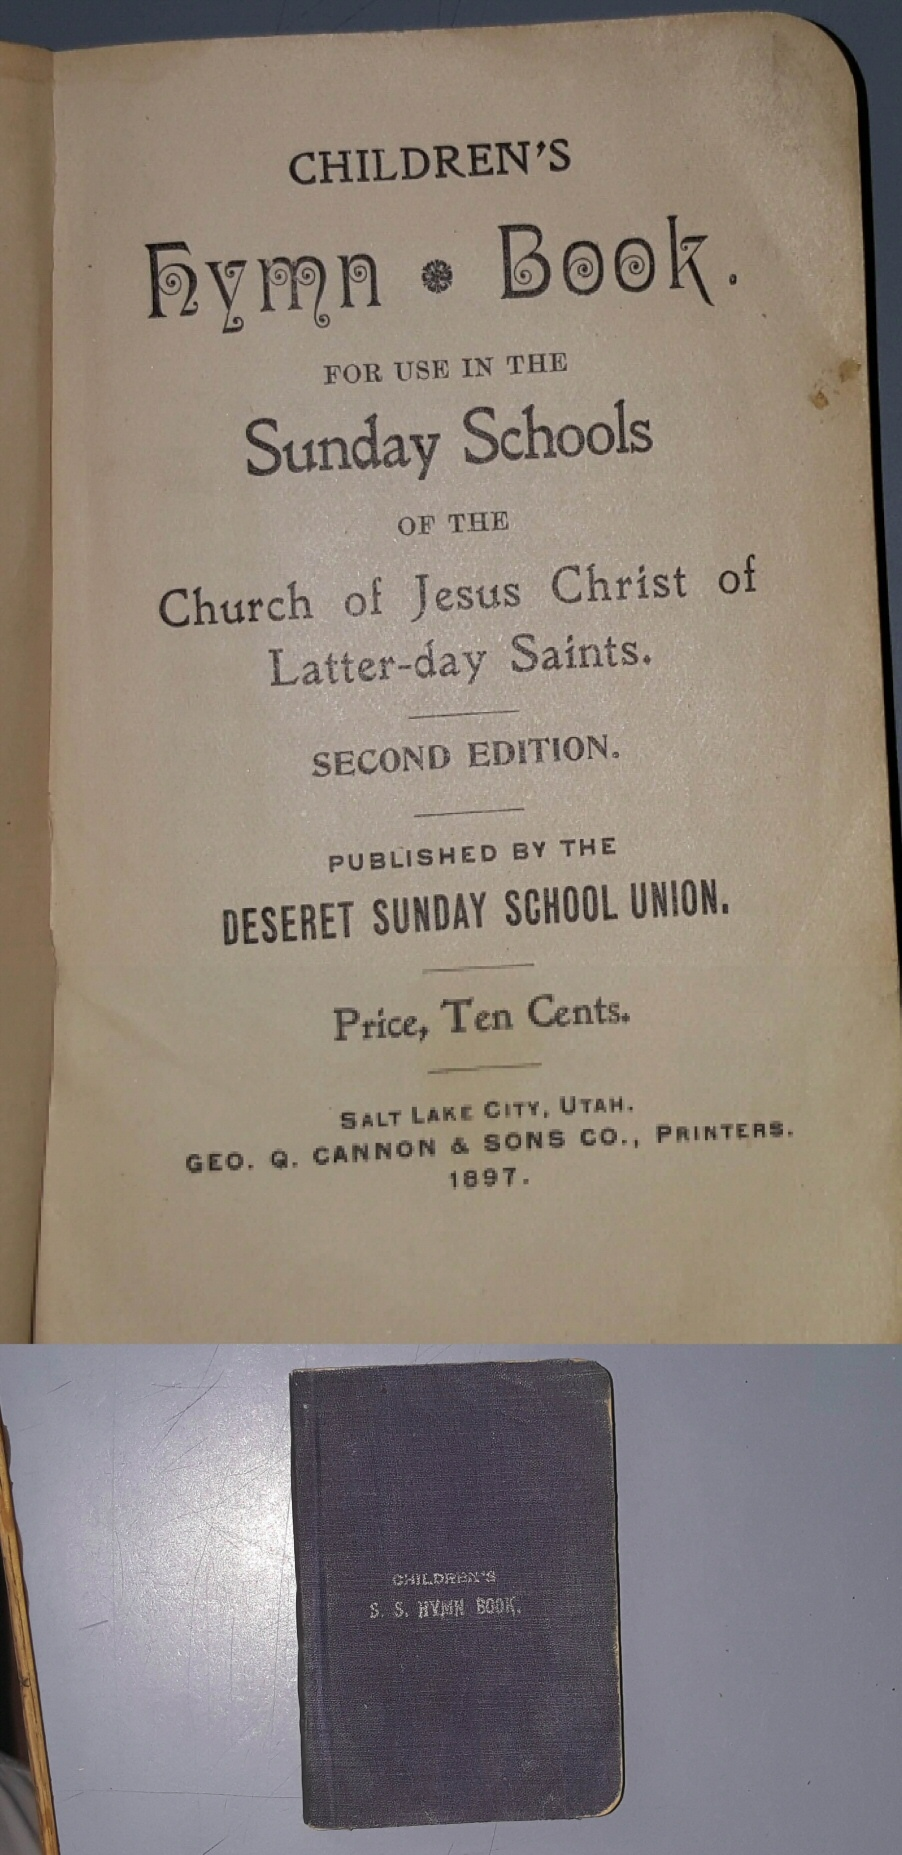 Children's hymn book for use in the Sunday Schools of The Church of Jesus Christ of Latter- day Saints